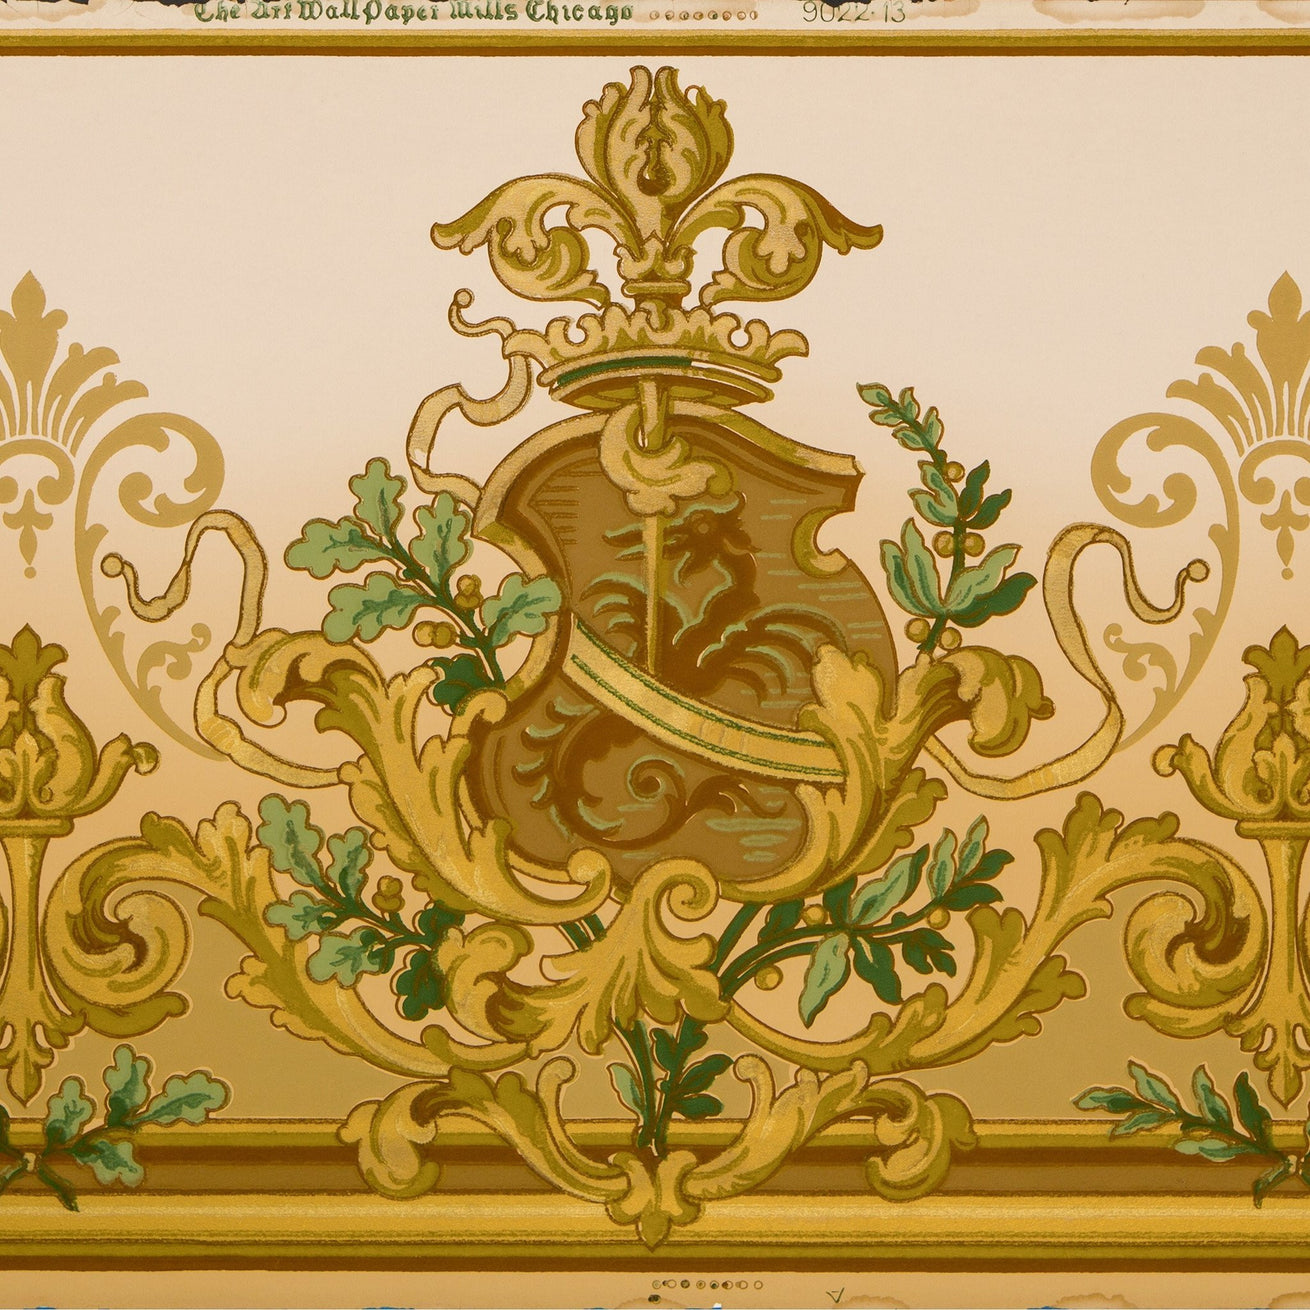 Heraldic Frieze with Shield and Leafy Scrolls - Antique Wallpaper Remnant